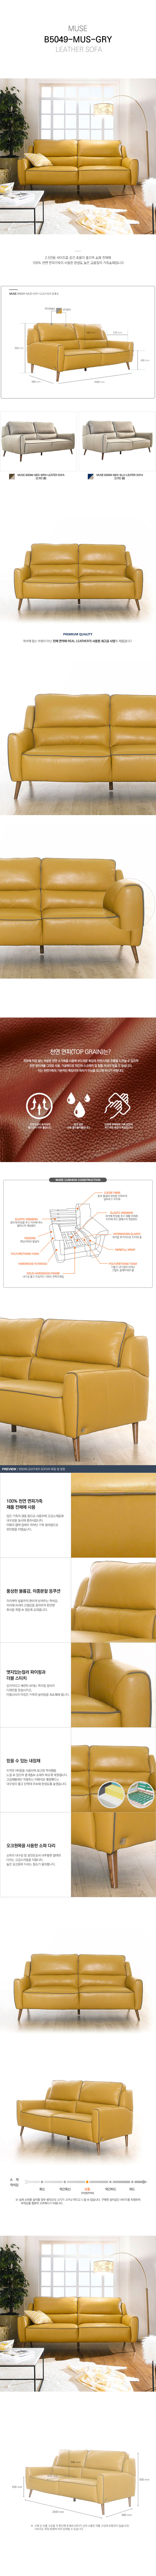 B5049-Mus-Gry-Leather-Sofa_180223.jpg